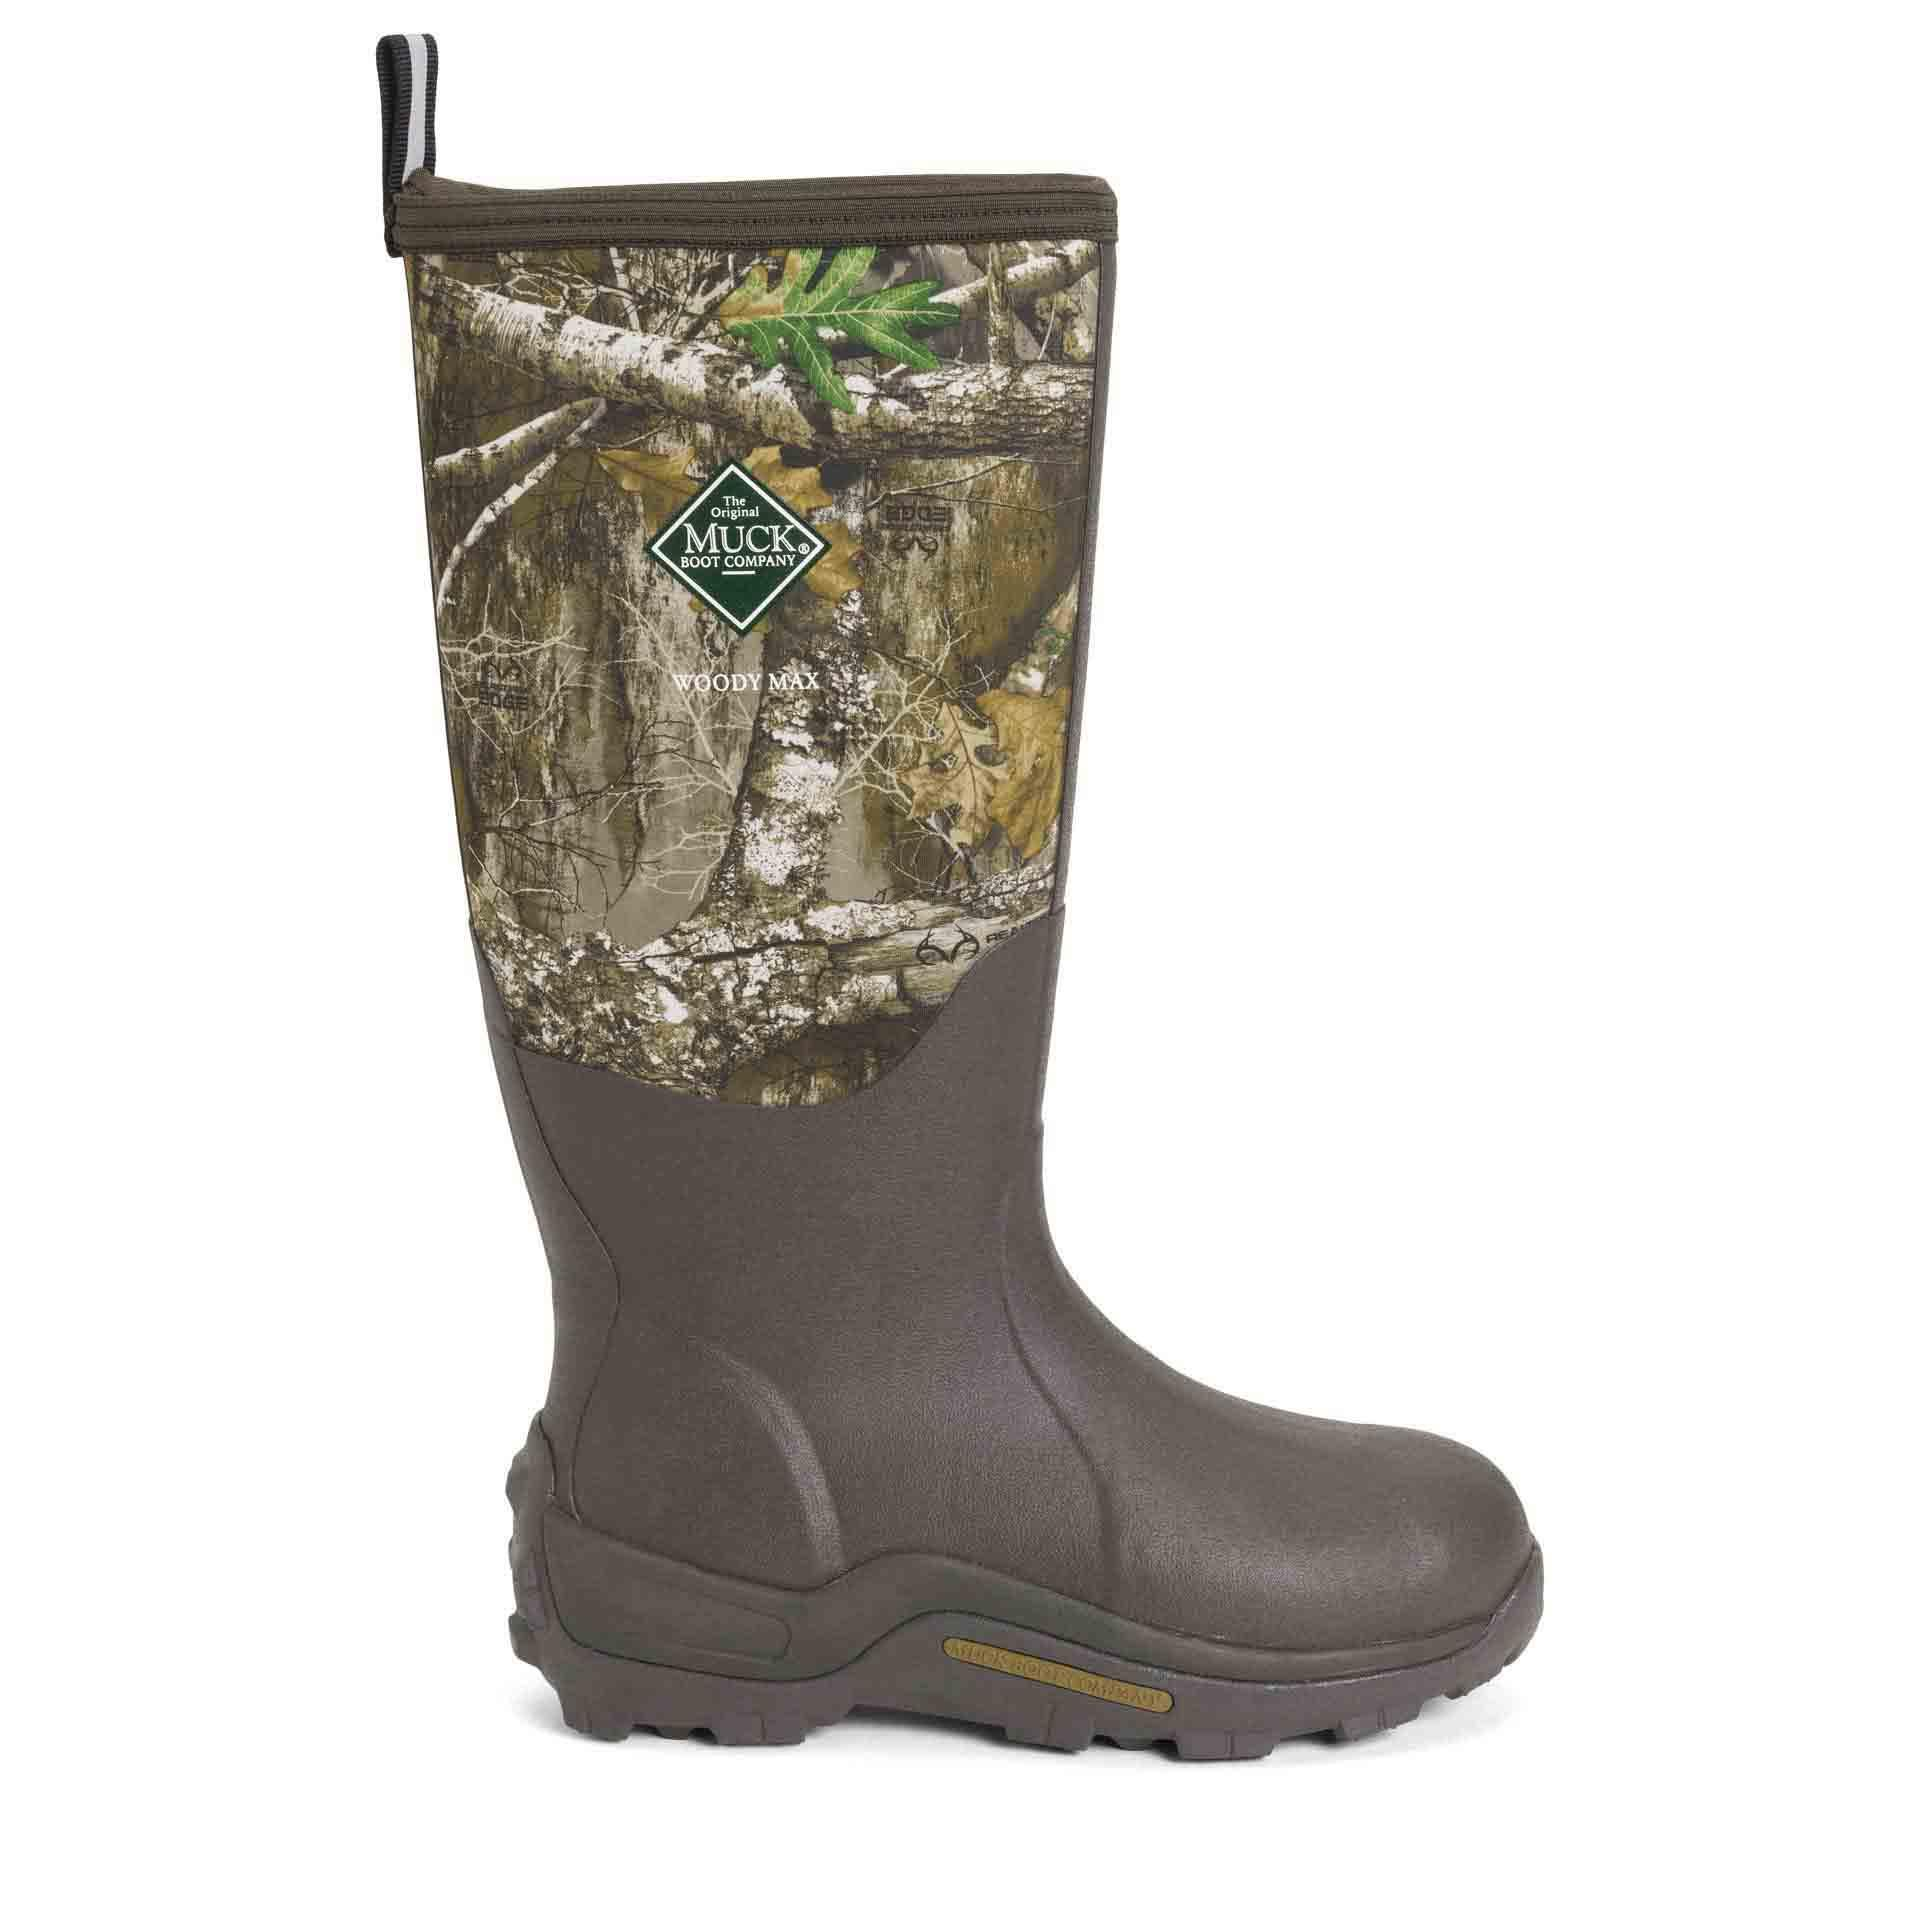 Muck Woody Max Rubber Hunting Boot Brown Realtree Edge